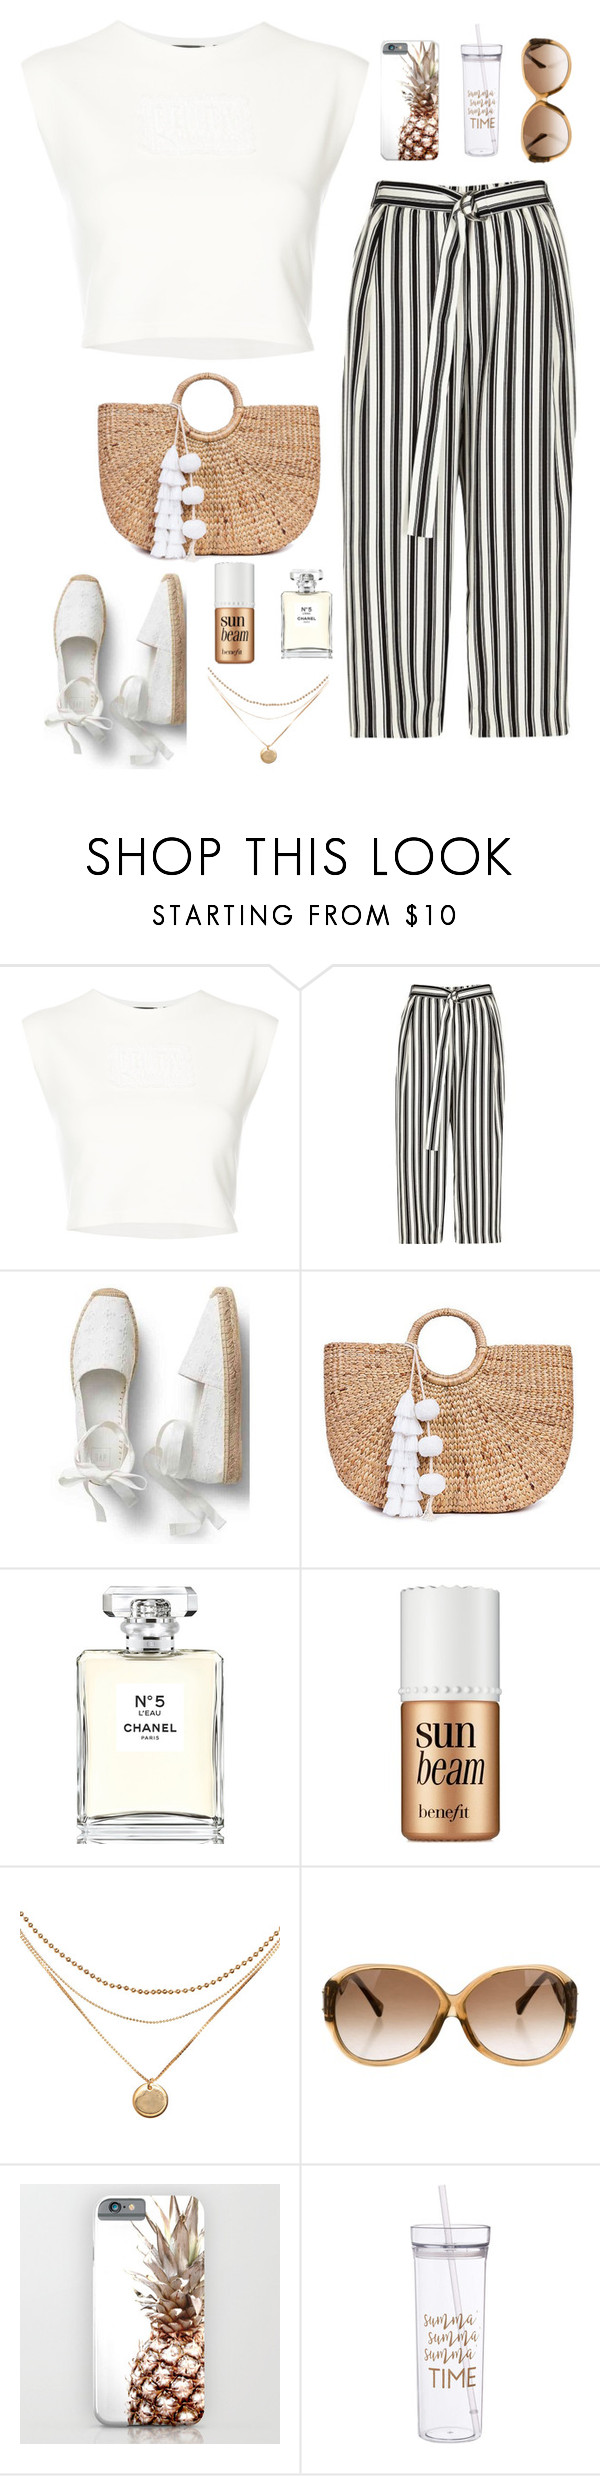 """Untitled #3"" by michaela-novosadova ❤ liked on Polyvore featuring Puma, River Island, JADE TRIBE, Chanel, Benefit and Louis Vuitton"